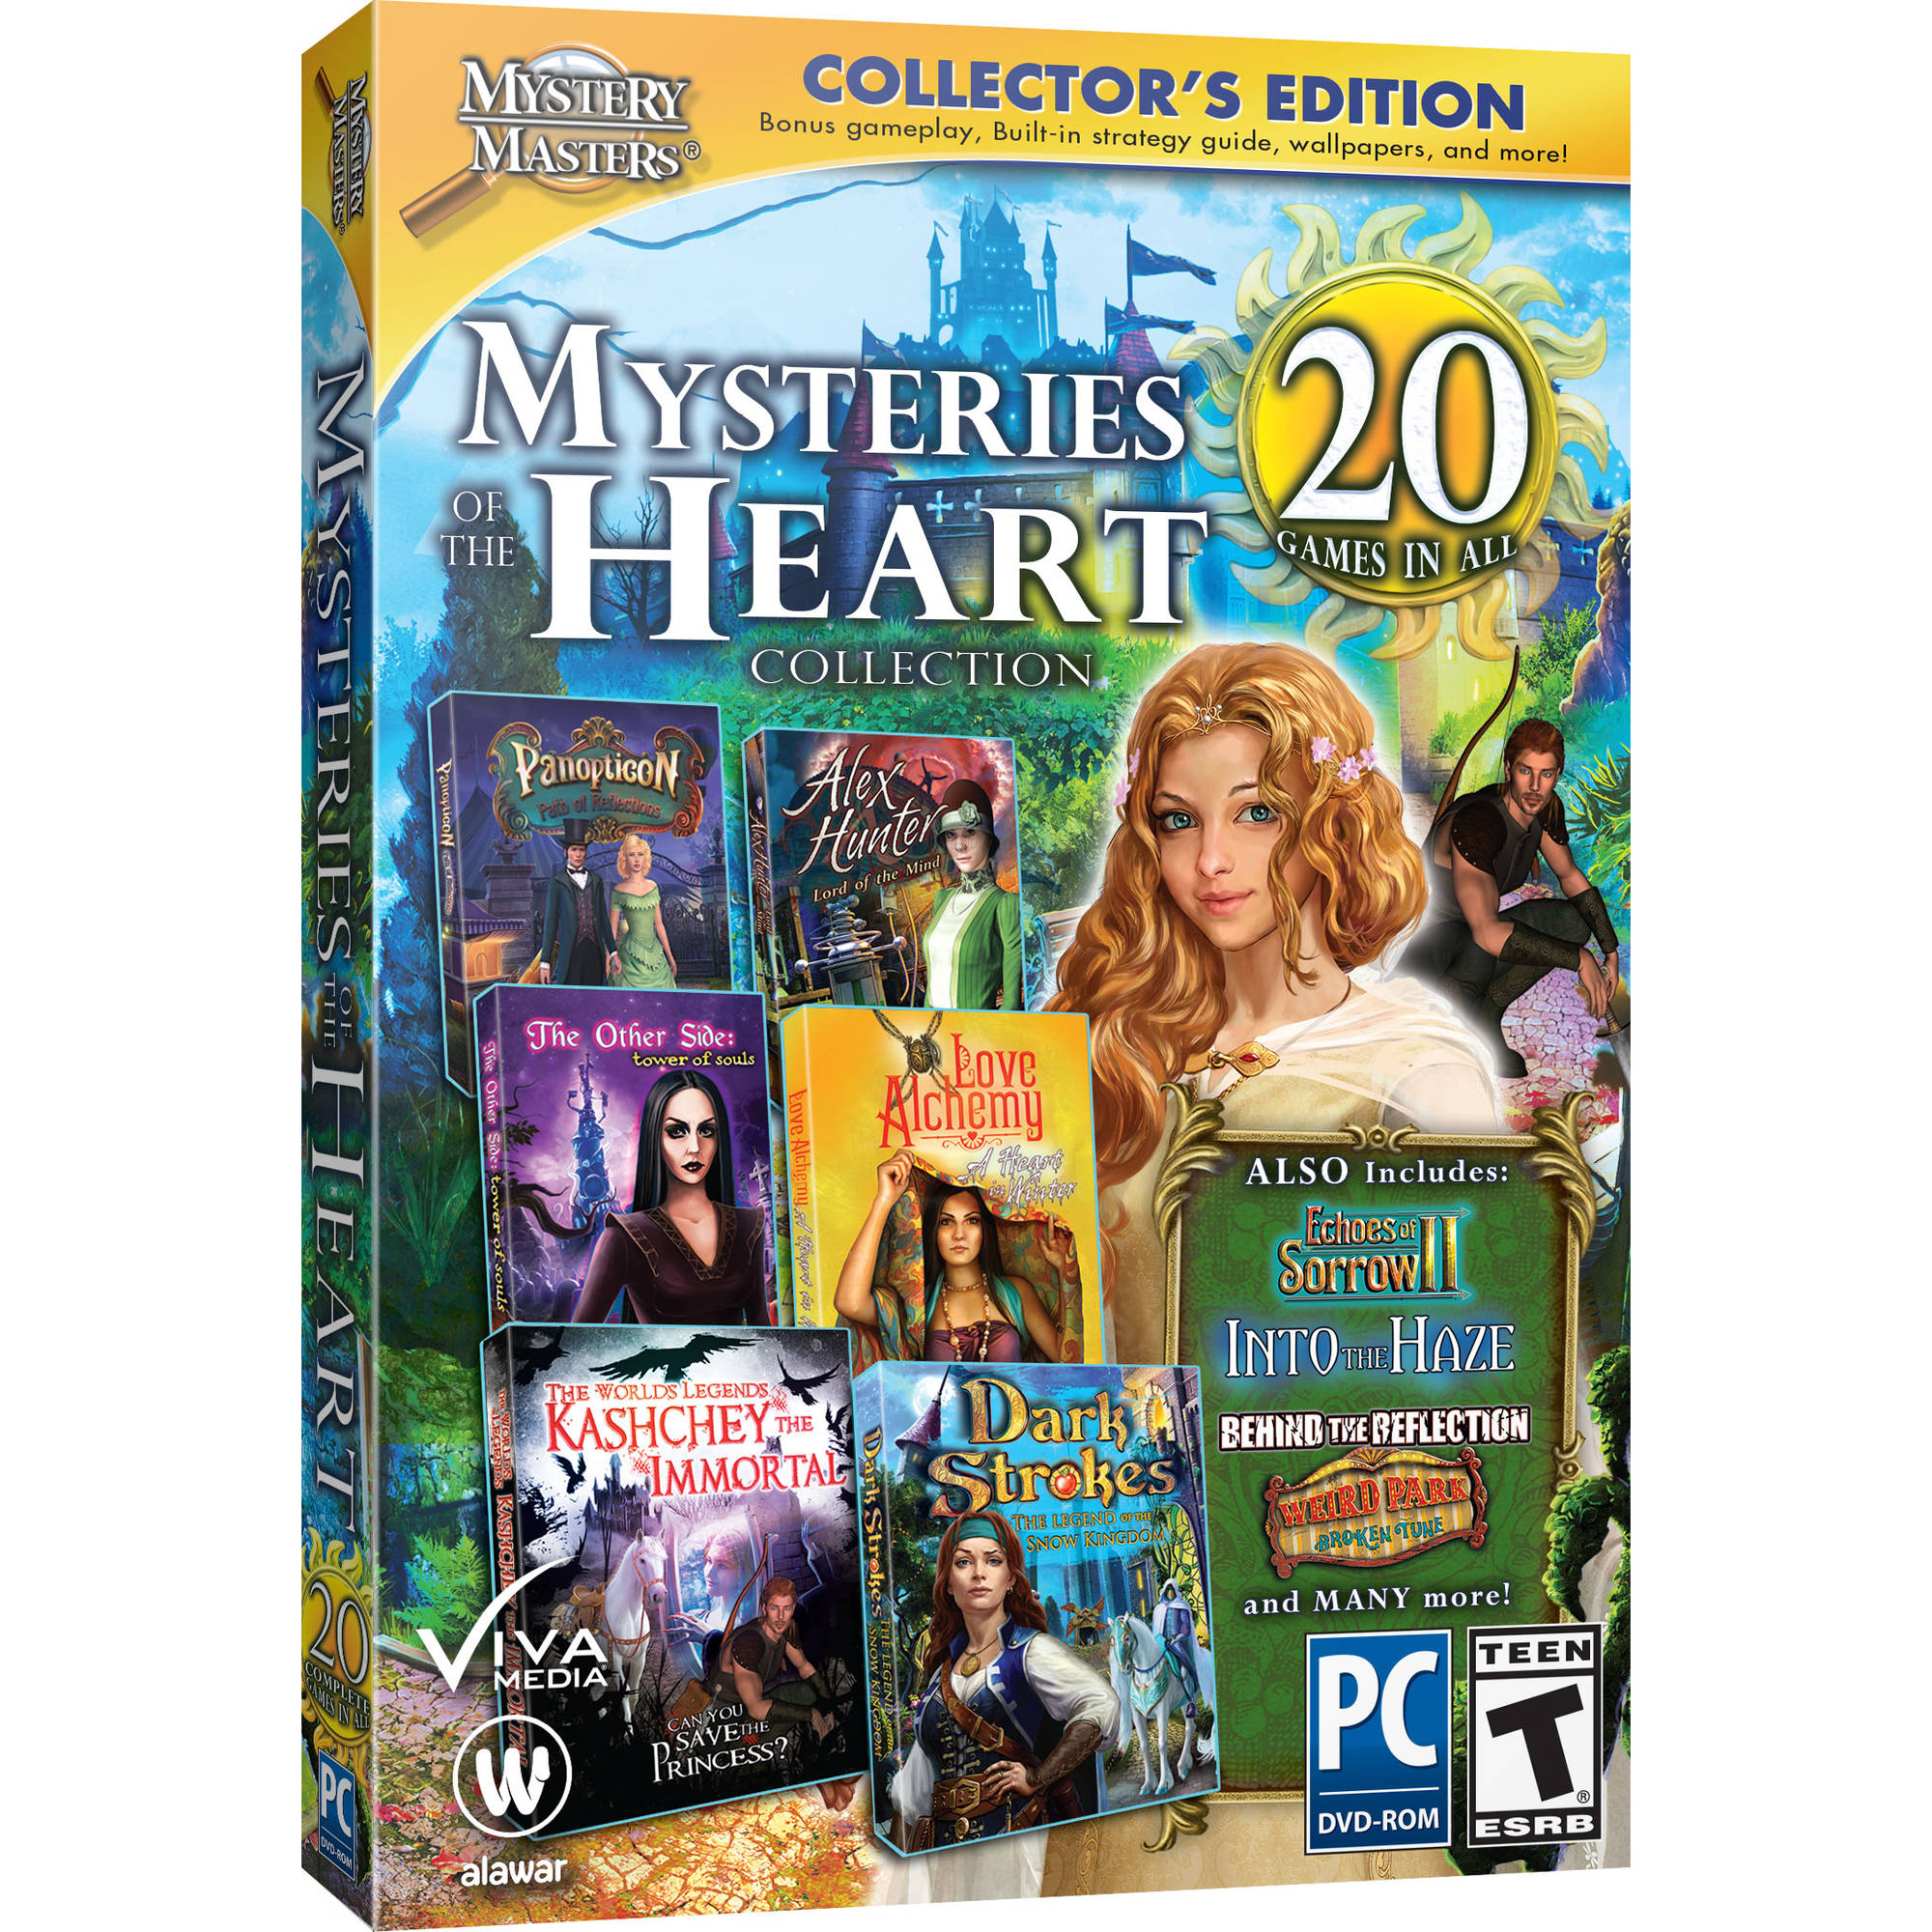 Mystery Masters Mystery of the Heart (PC)